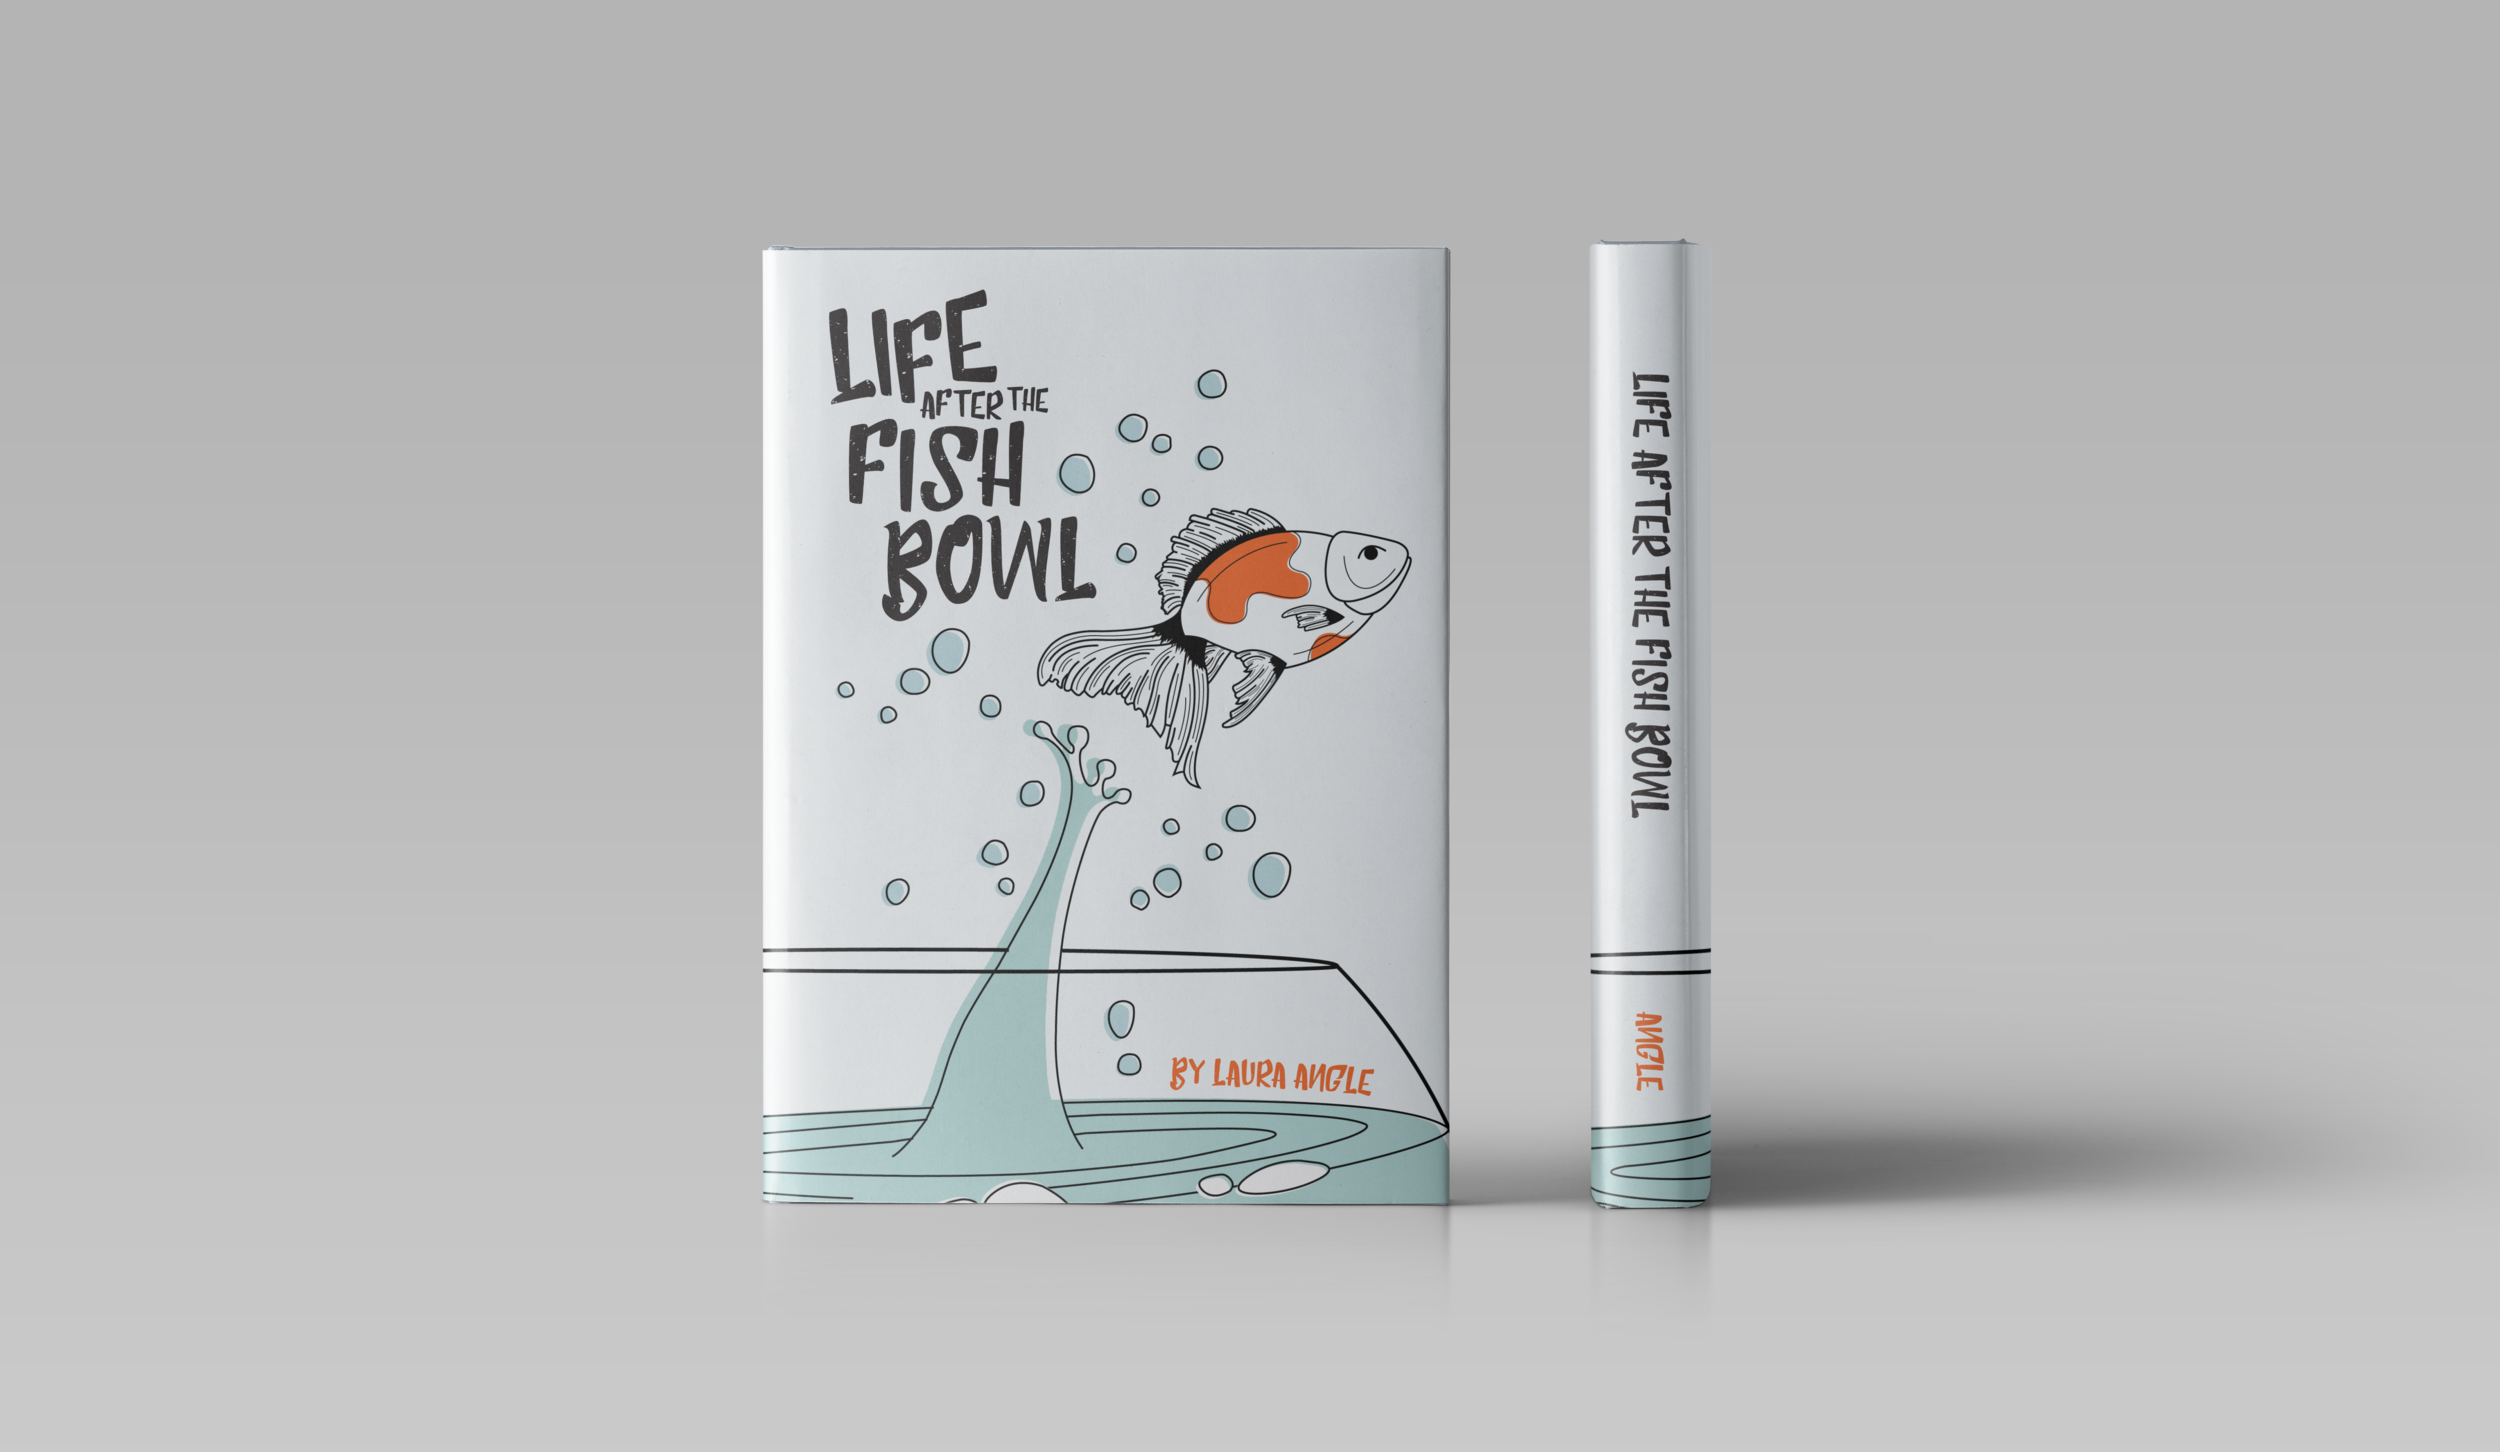 Life after the fish bowl  | Fall 2018 | Role: design, illustration